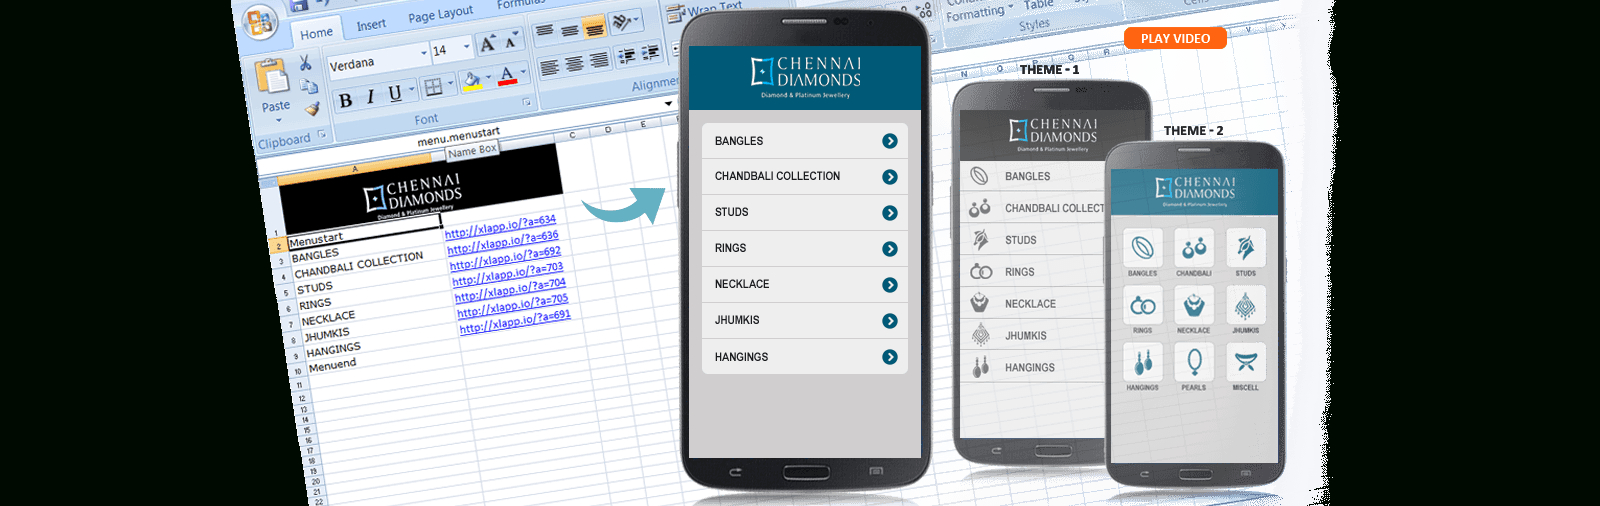 How To Make An App From An Excel Spreadsheet Inside Convert Excel To Android App  Xlapp